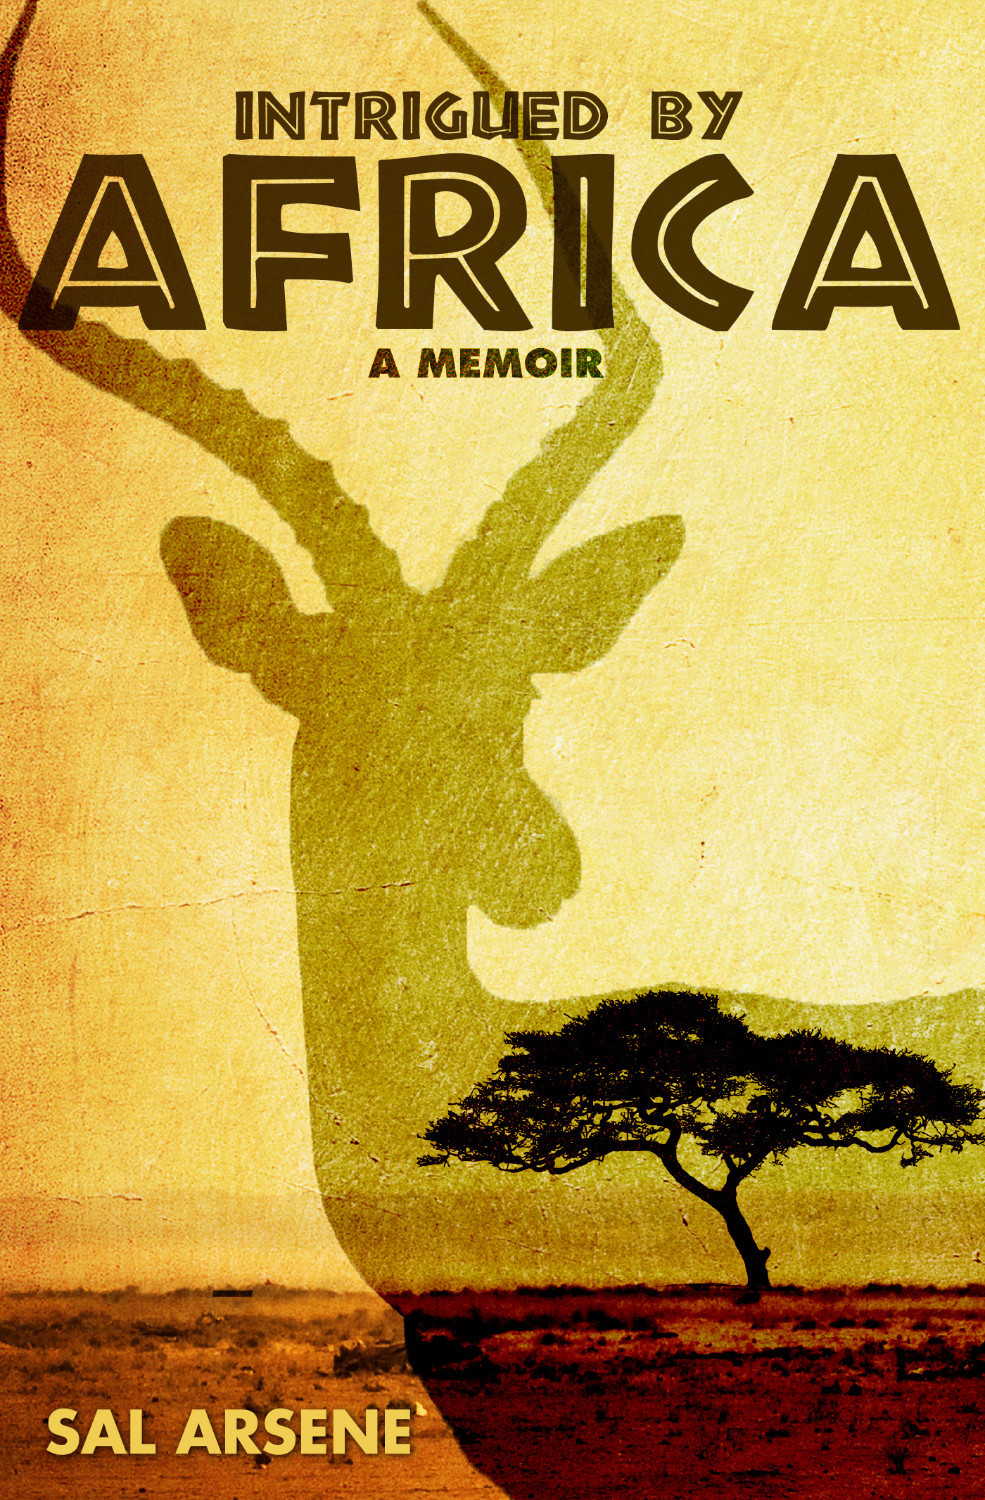 intrigued_by_africa_cover_1400px_wide_519-98.jpg